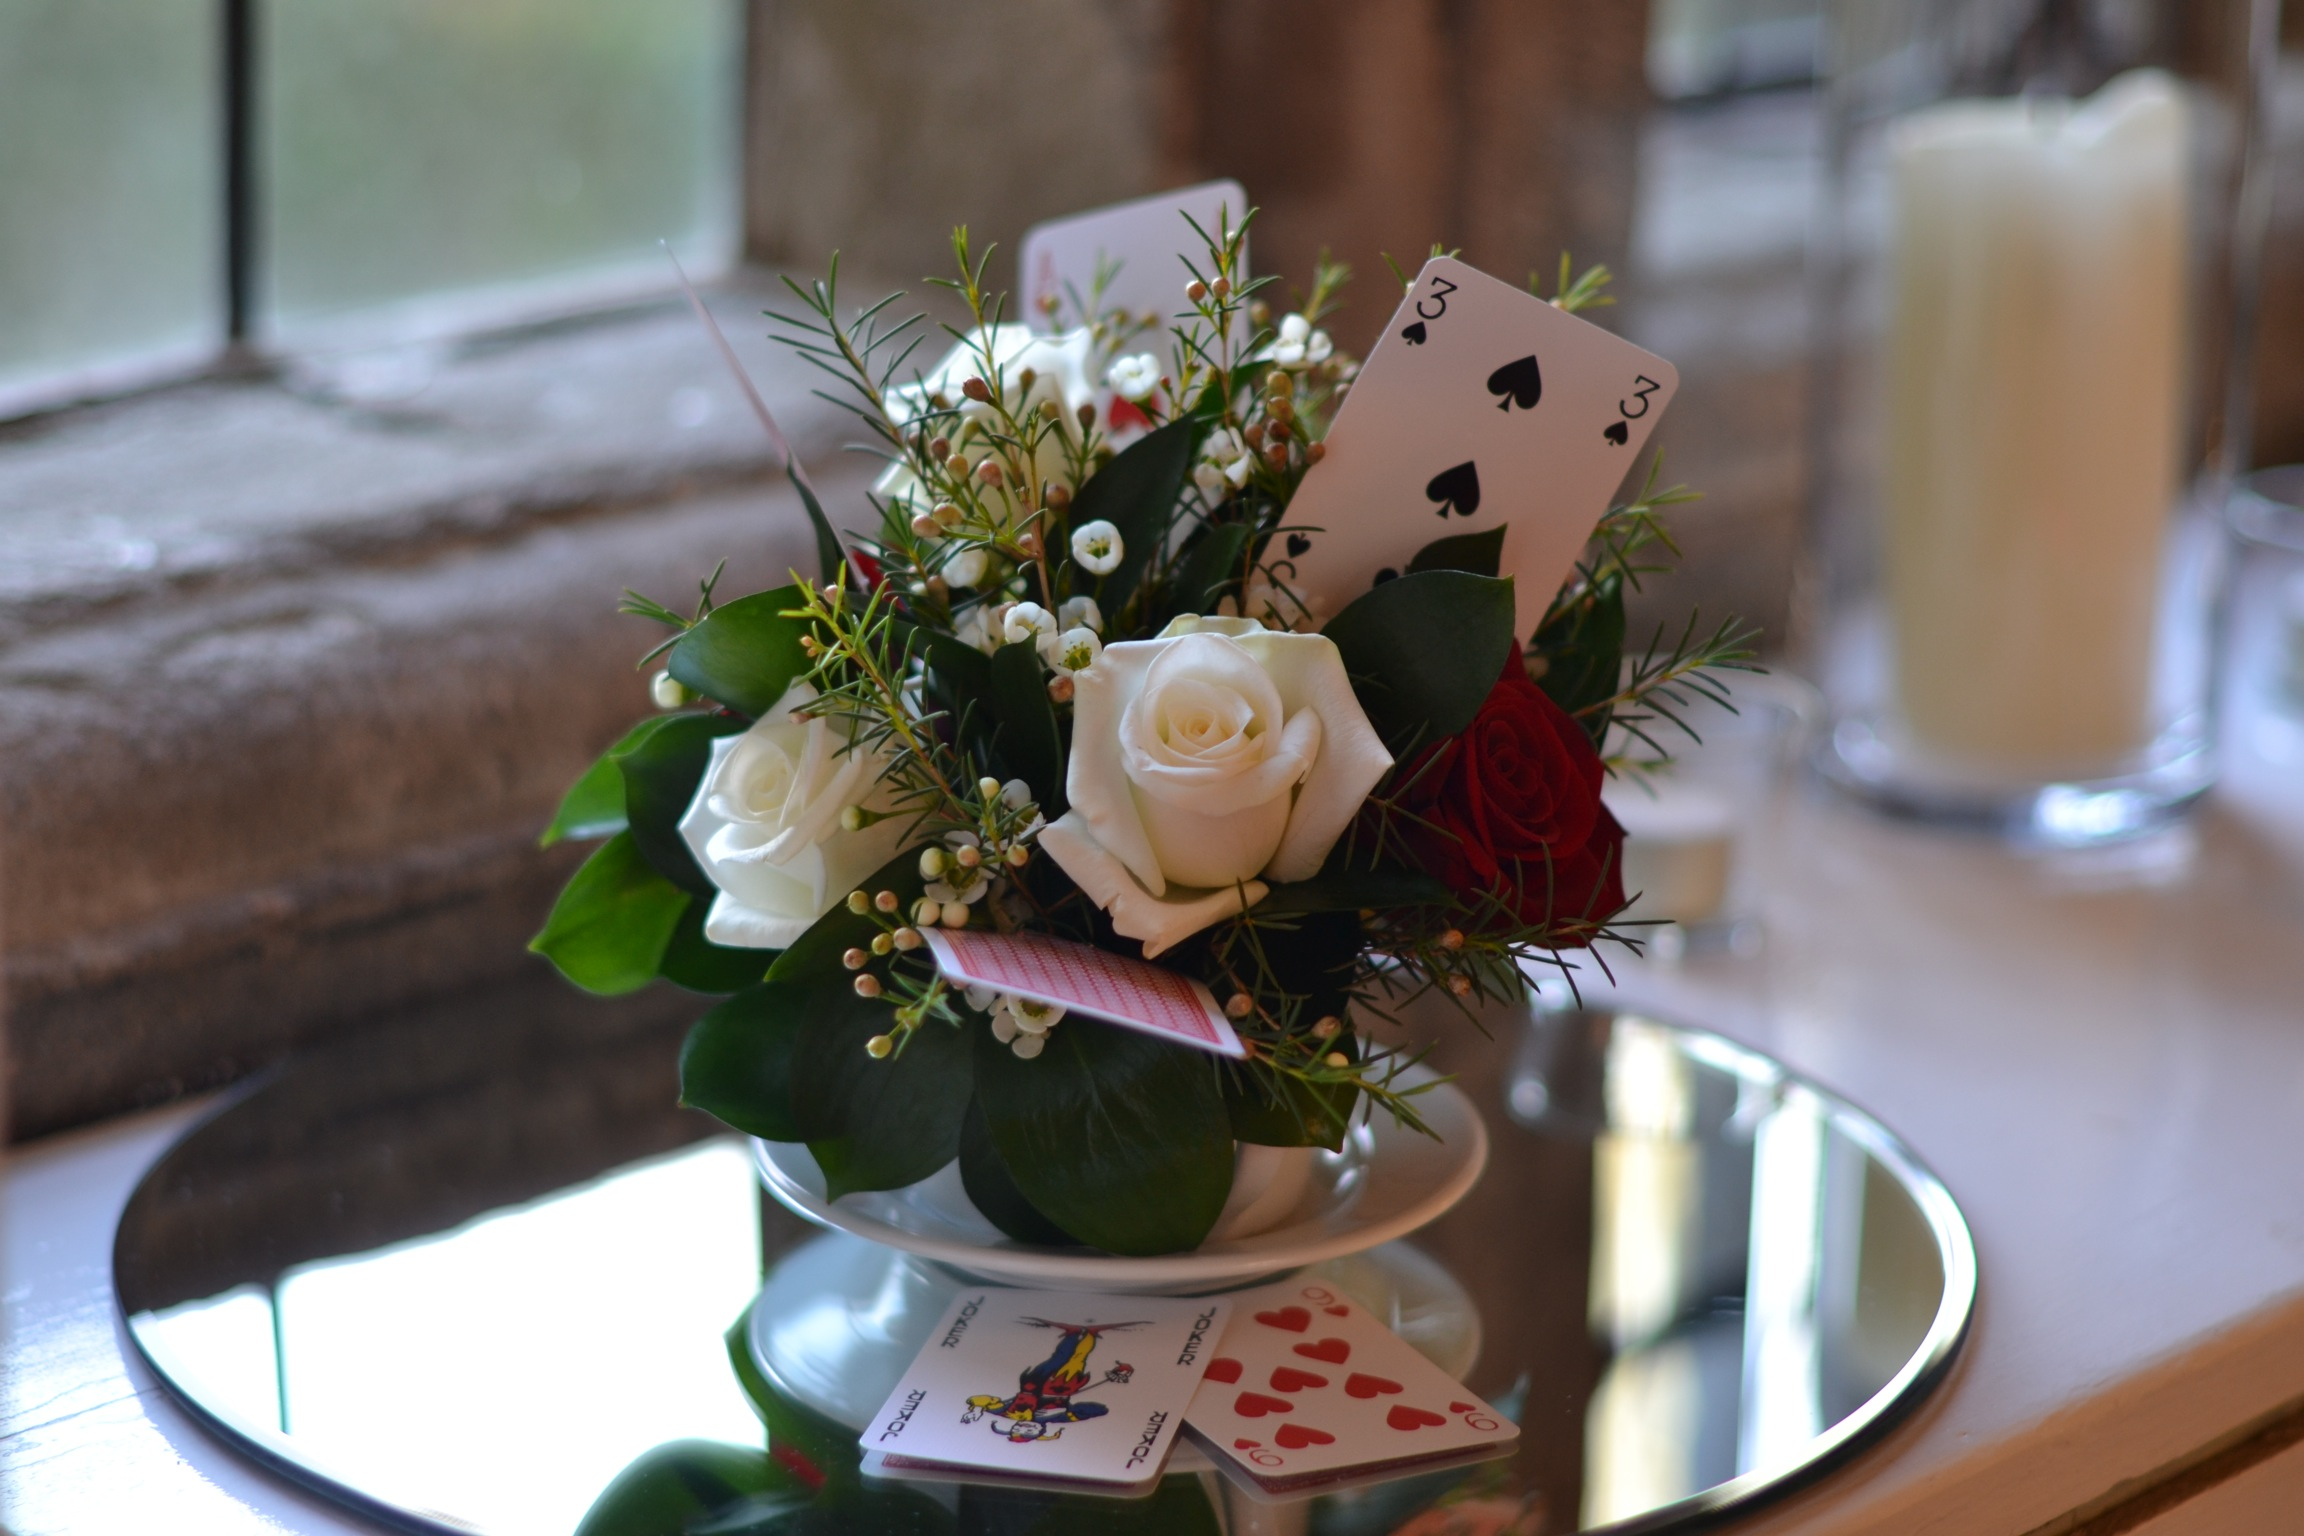 Table Centre- cup and saucer with playing cards